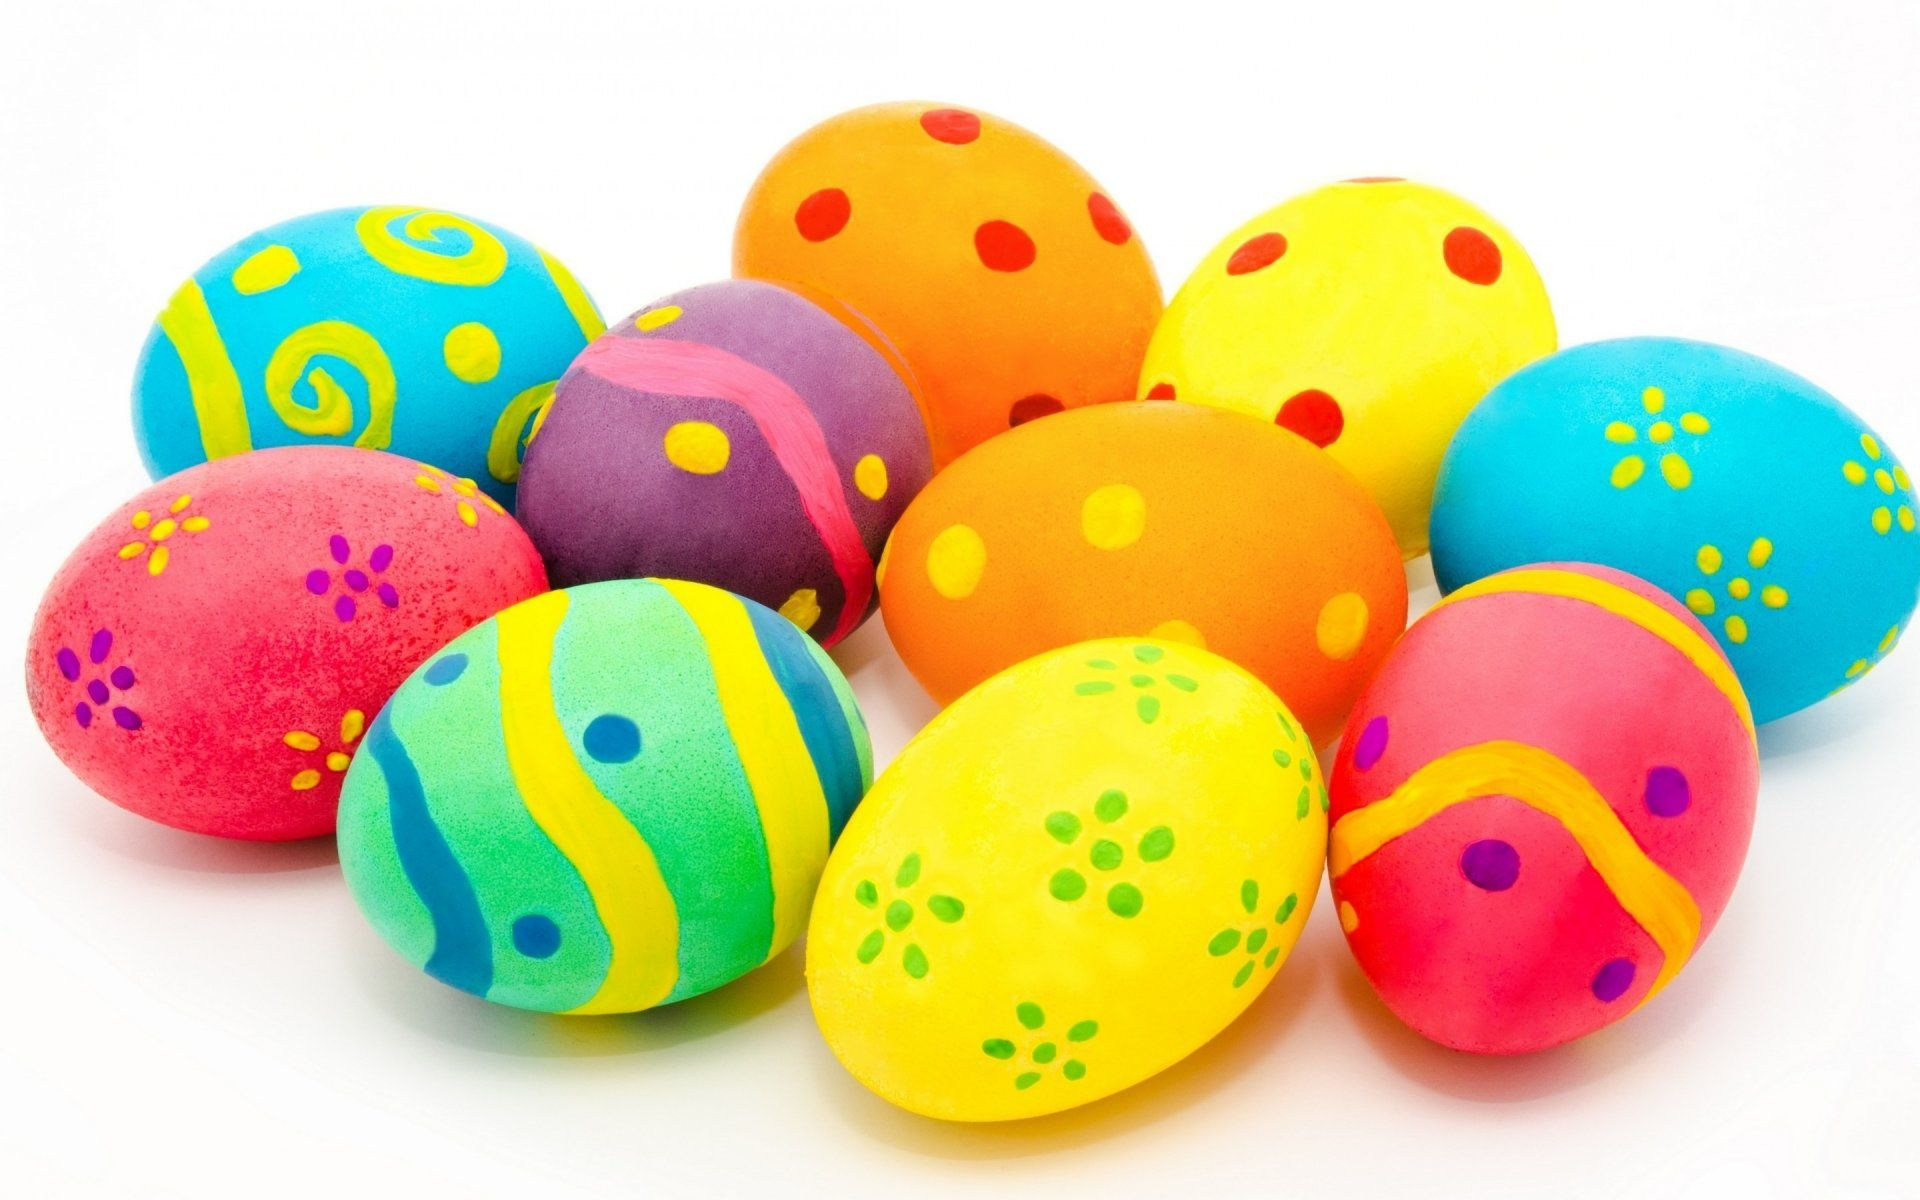 Cute Easter Egg Backgrounds